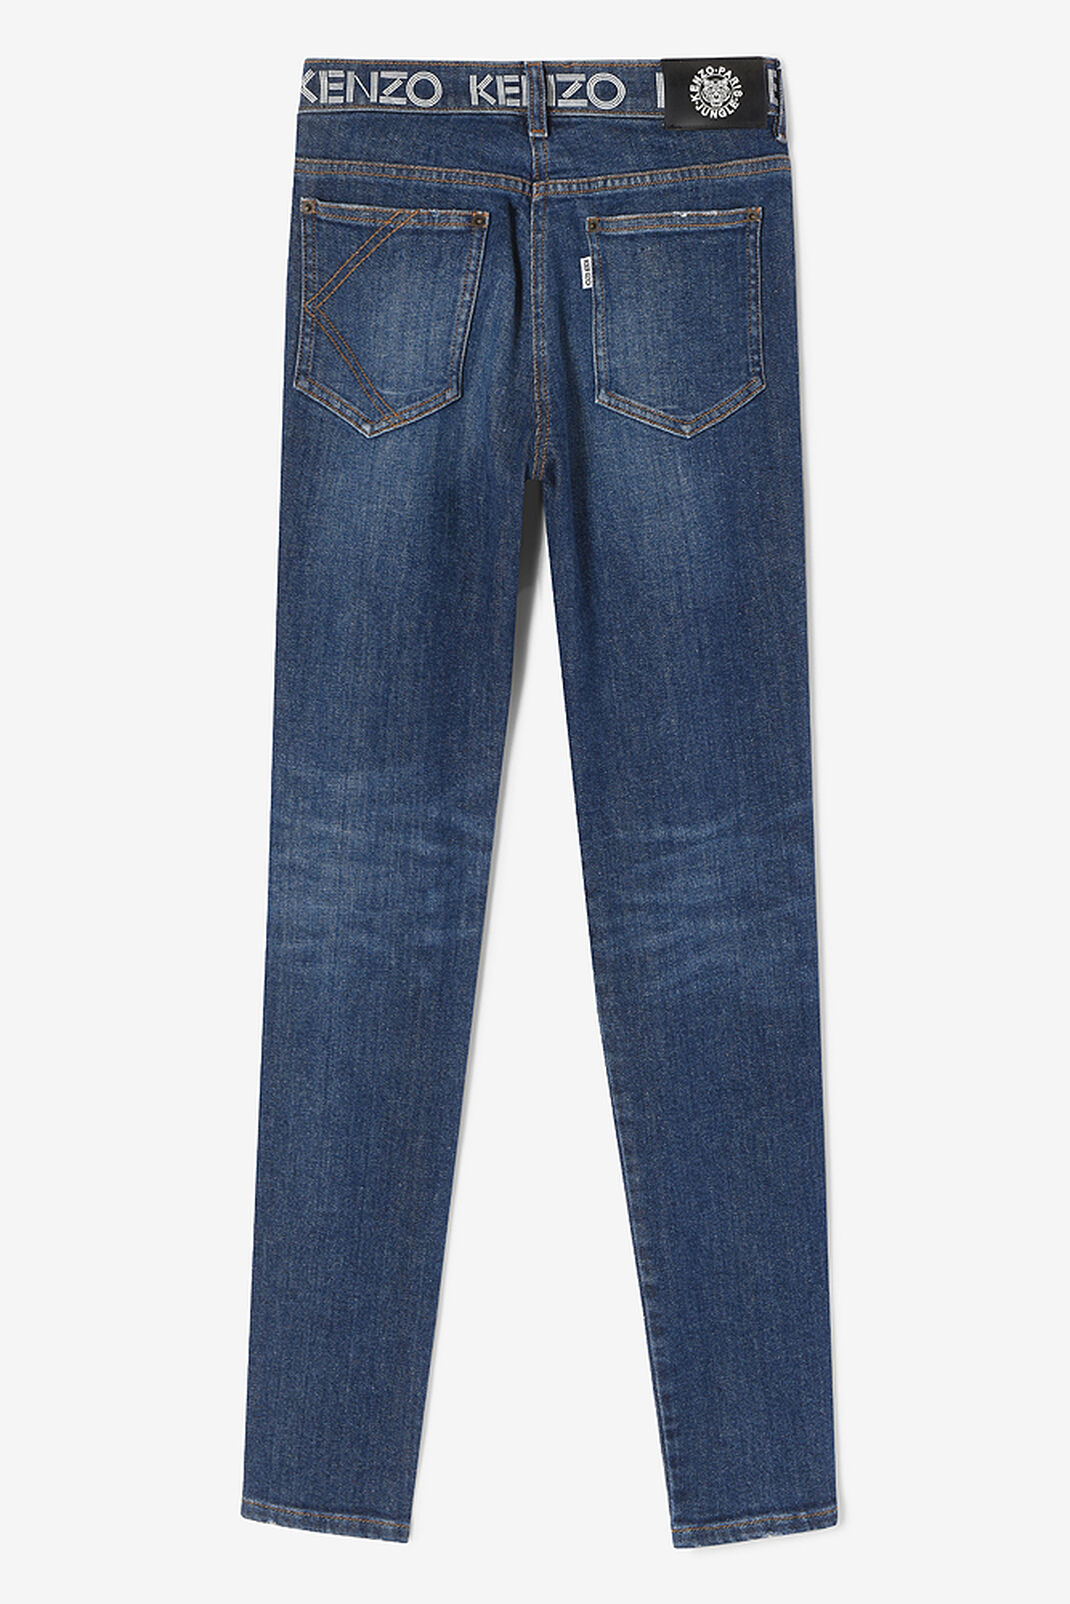 NAVY BLUE Sretch Denim KENZO Jeans  for women